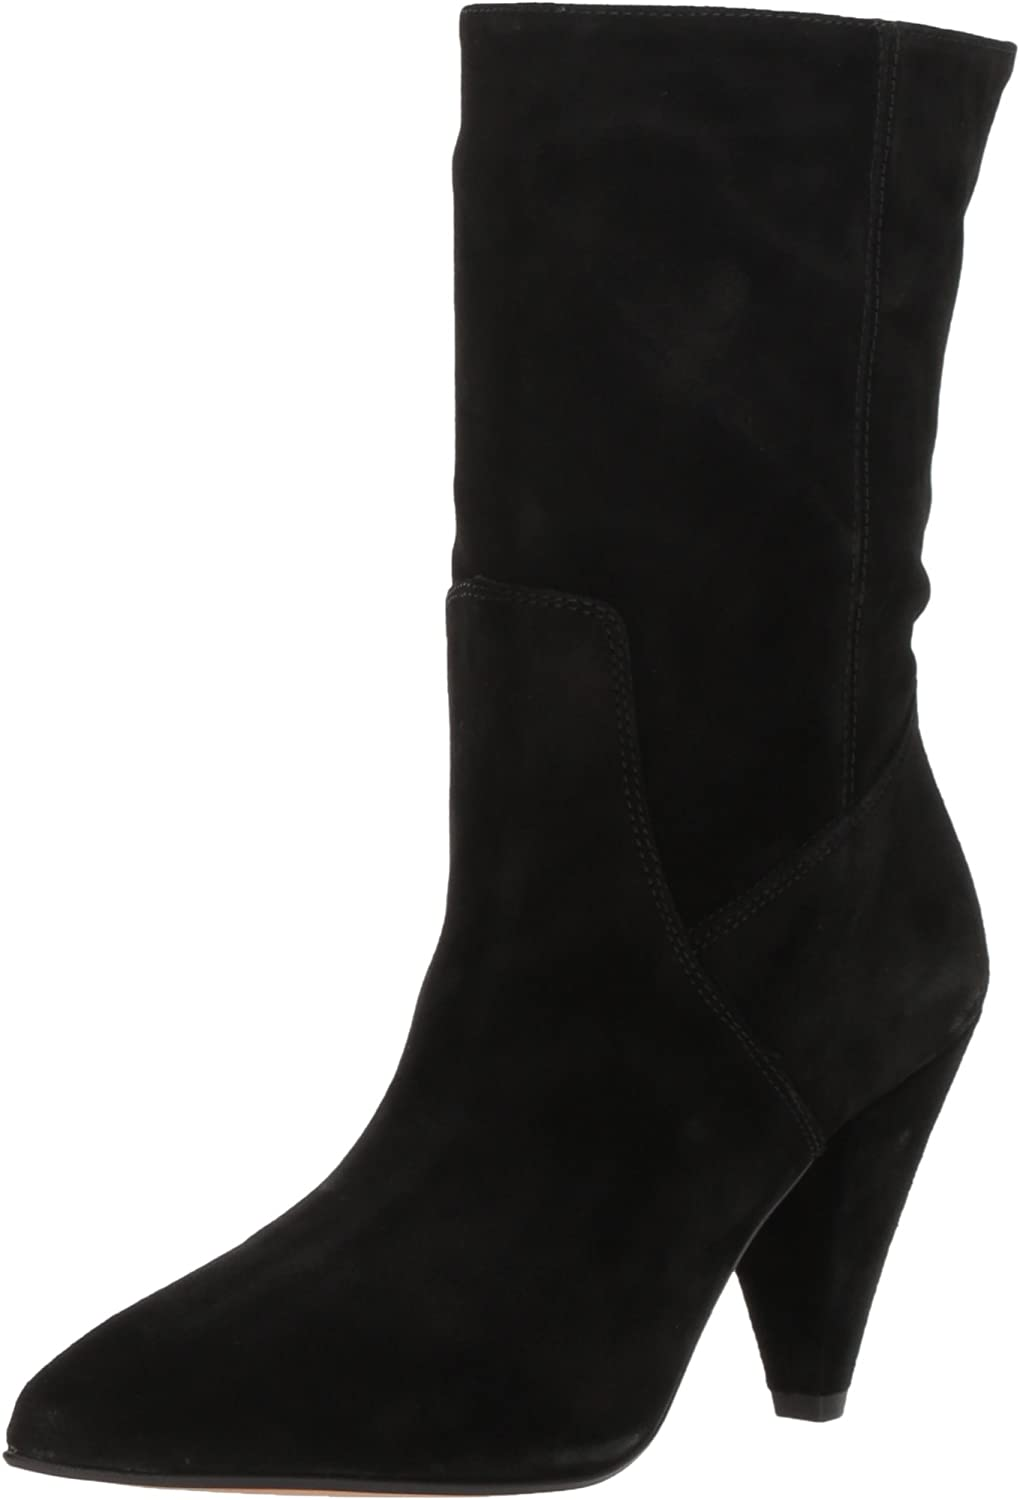 Kenneth Cole Damen Labella Schlupfstiefel